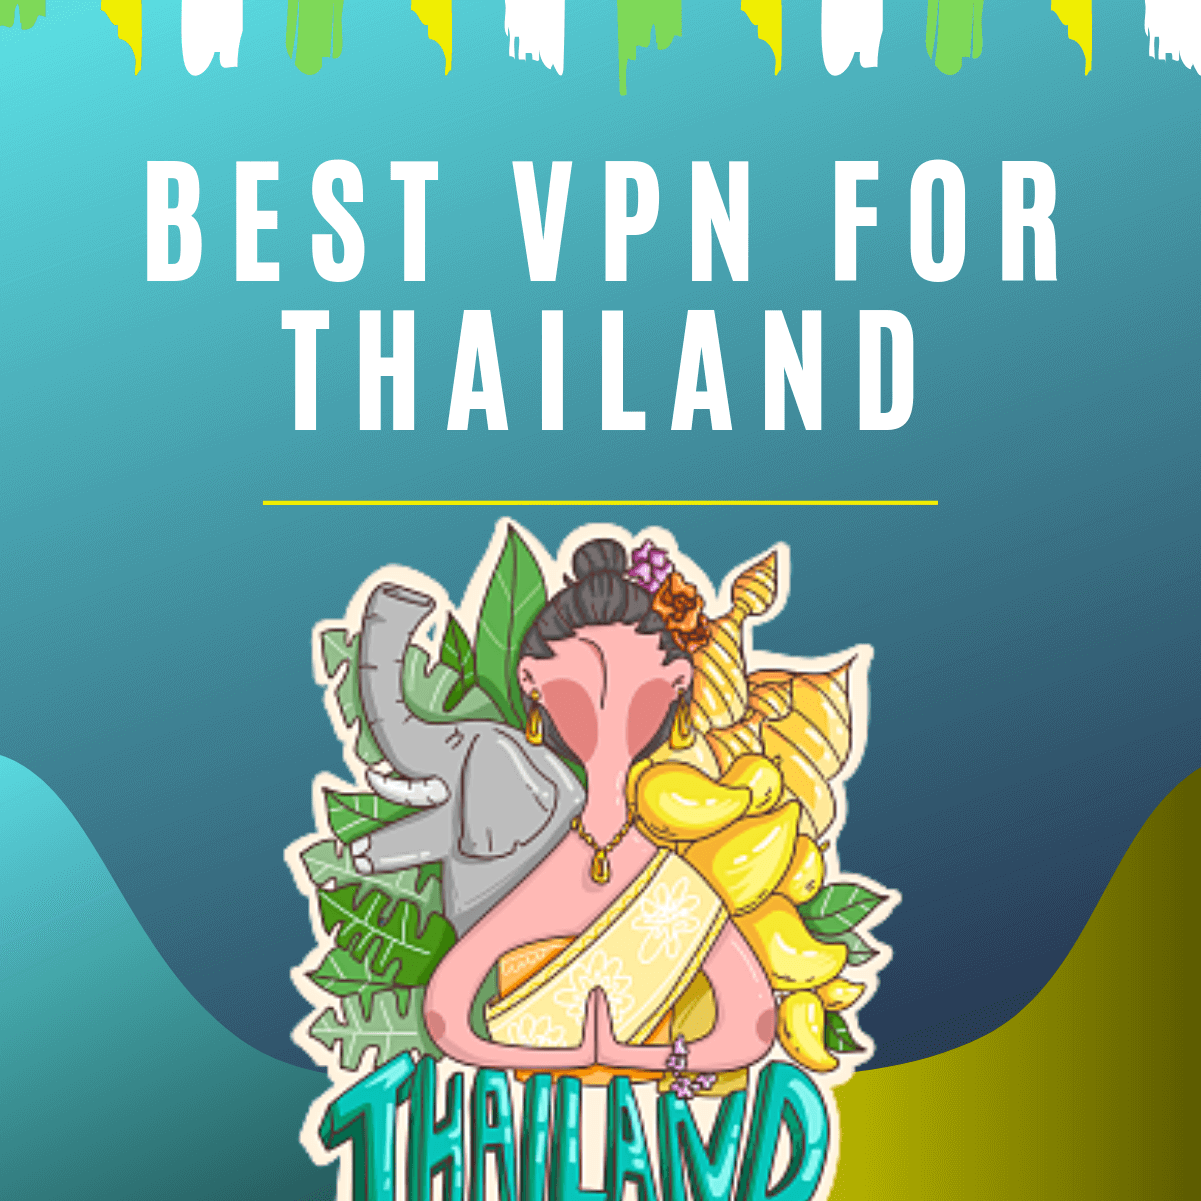 5 Best VPNs for Thailand - Avoid Survaillance & Bypass Geo